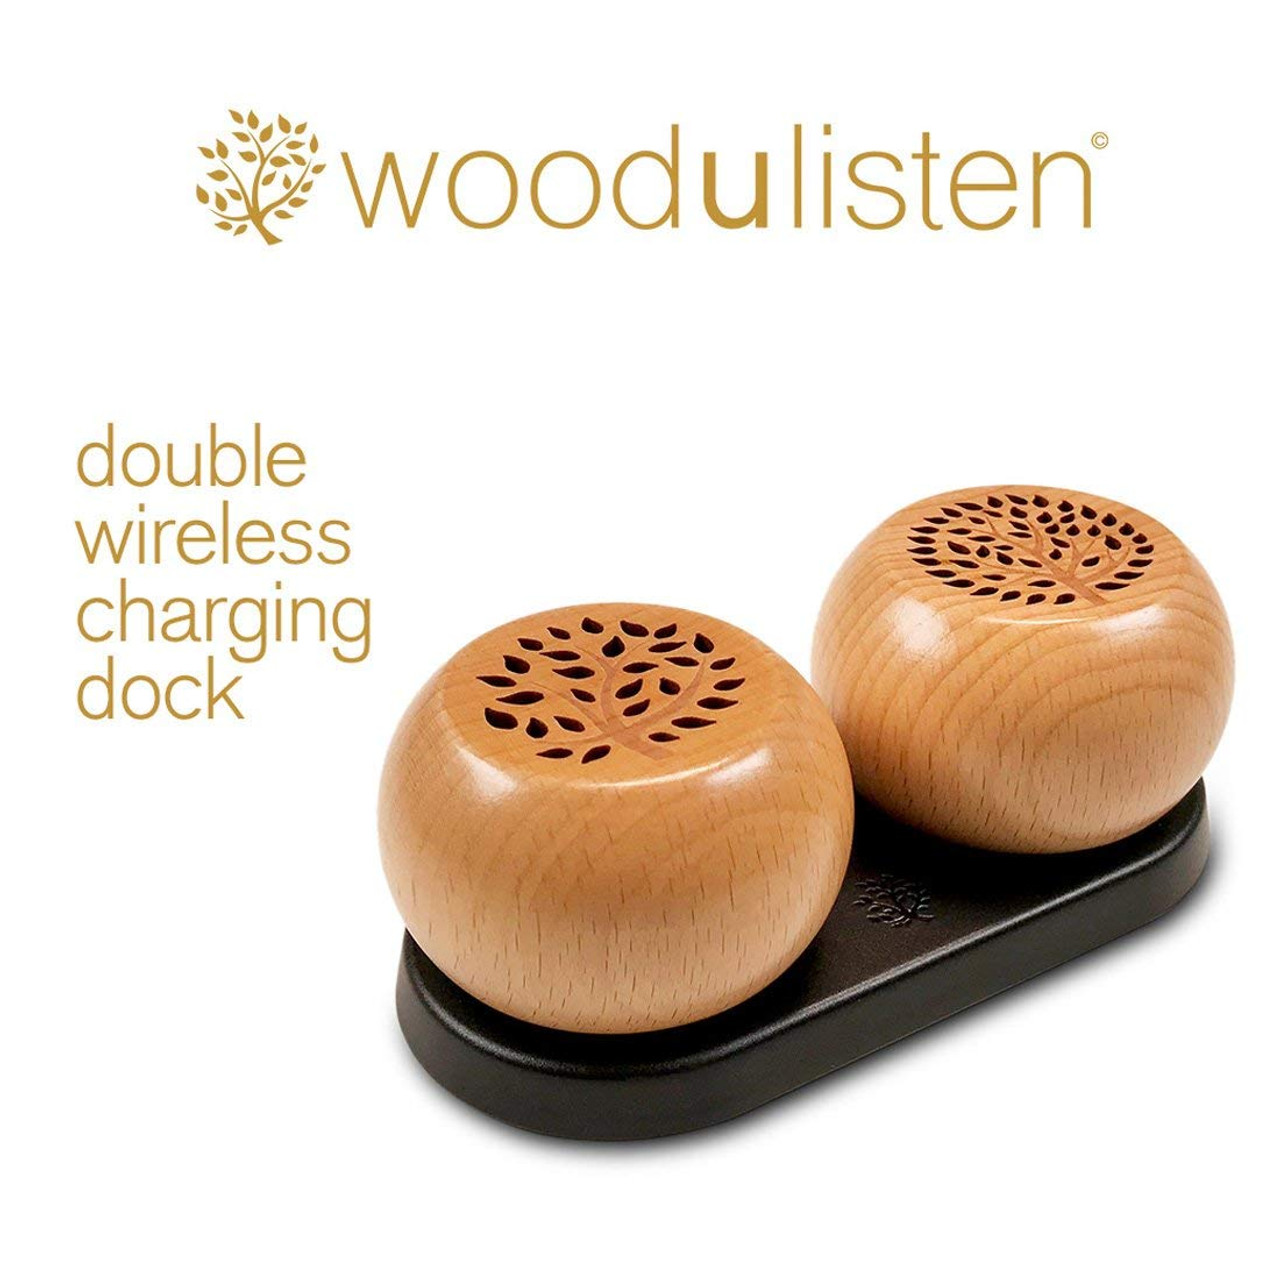 Woodulisten WUL-STEREOSET-NATURAL Wooden Wireless Mini Bluetooth Speaker Stereo Set with Charging Dock